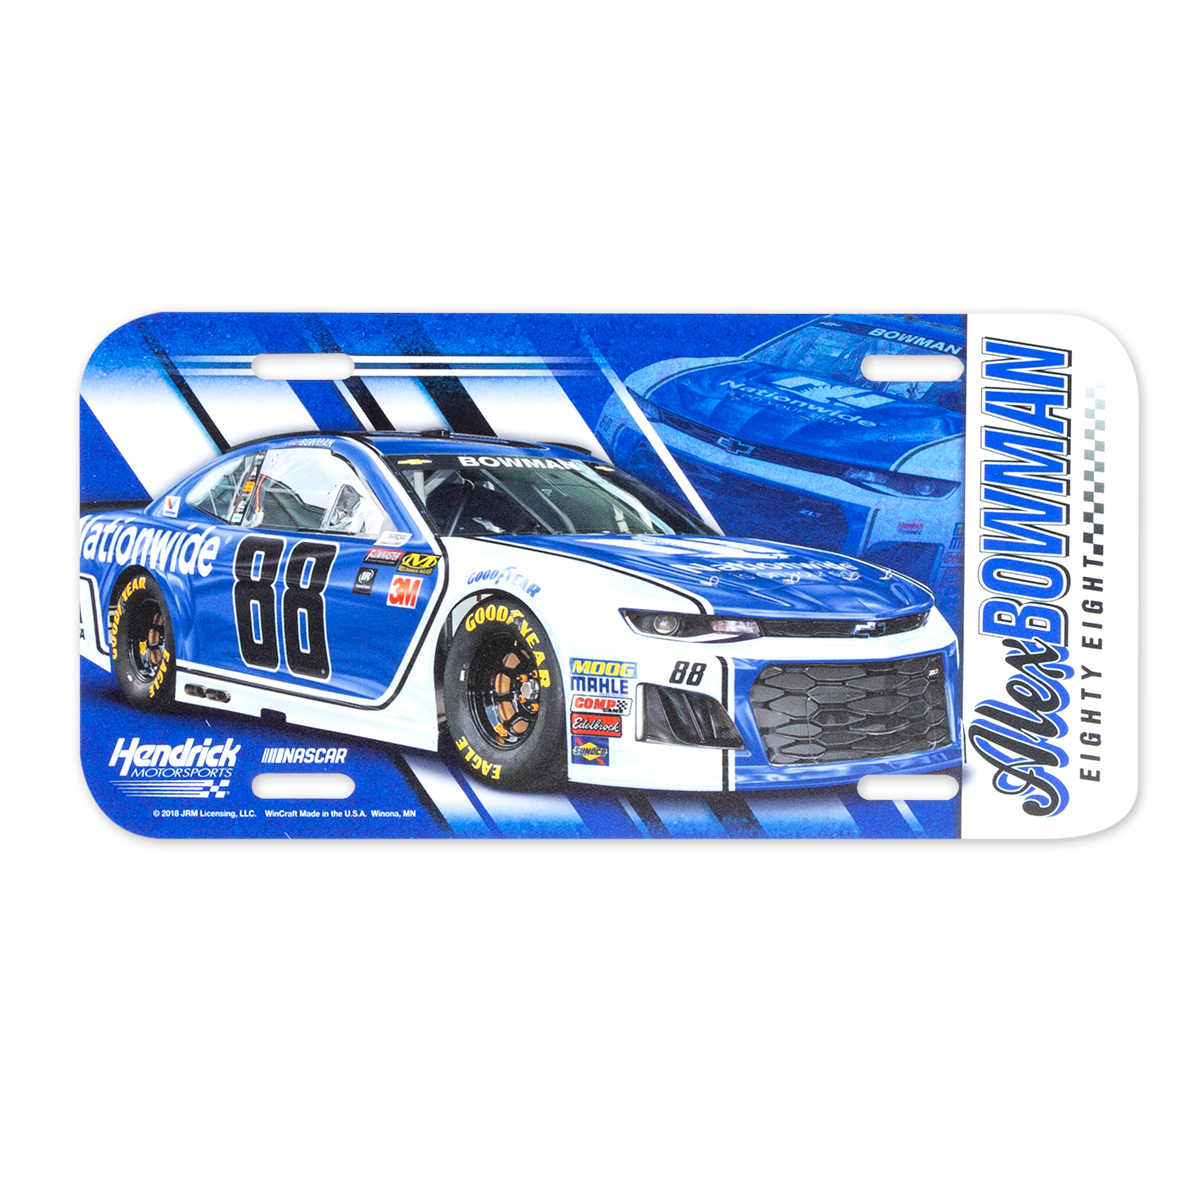 Alex Bowman #88 2018 NASCAR License Plate